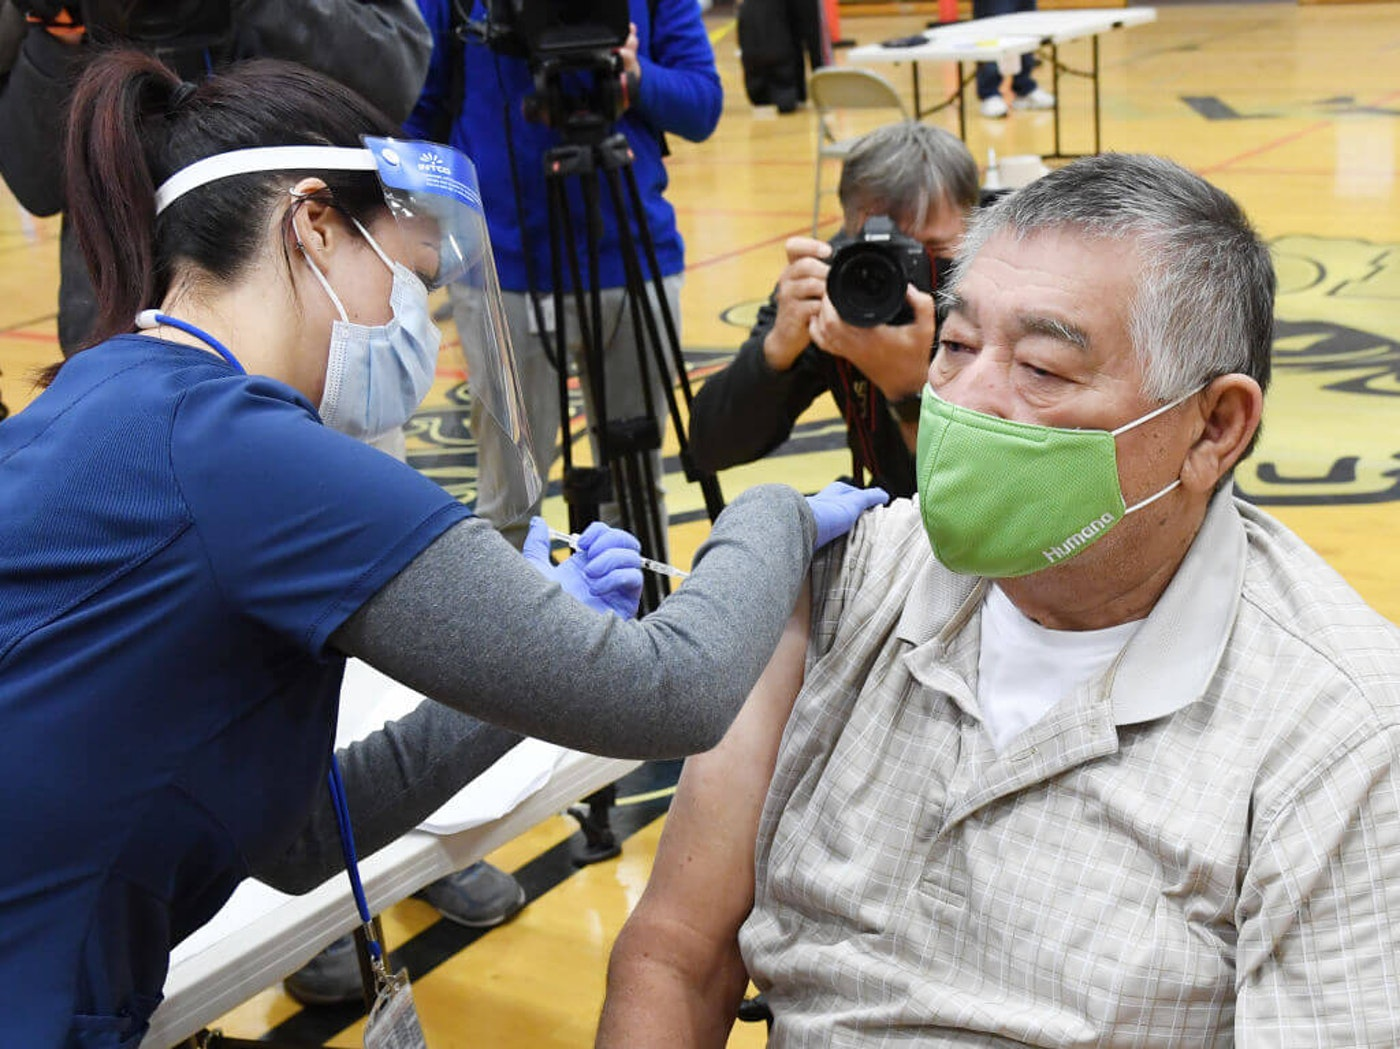 Southern Nevada Health District nurse Daliah Rubio administers a a Pfizer-BioNTech COVID-19 vaccination to Victor Rodriguez, 70, of Nevada, at Jerome Mack Middle School on January 29, 2021 in Las Vegas, Nevada. The Southern Nevada Health District is operating the site as a pop-up clinic for seniors age 70 and older.  (Photo by Ethan Miller/Getty Images)